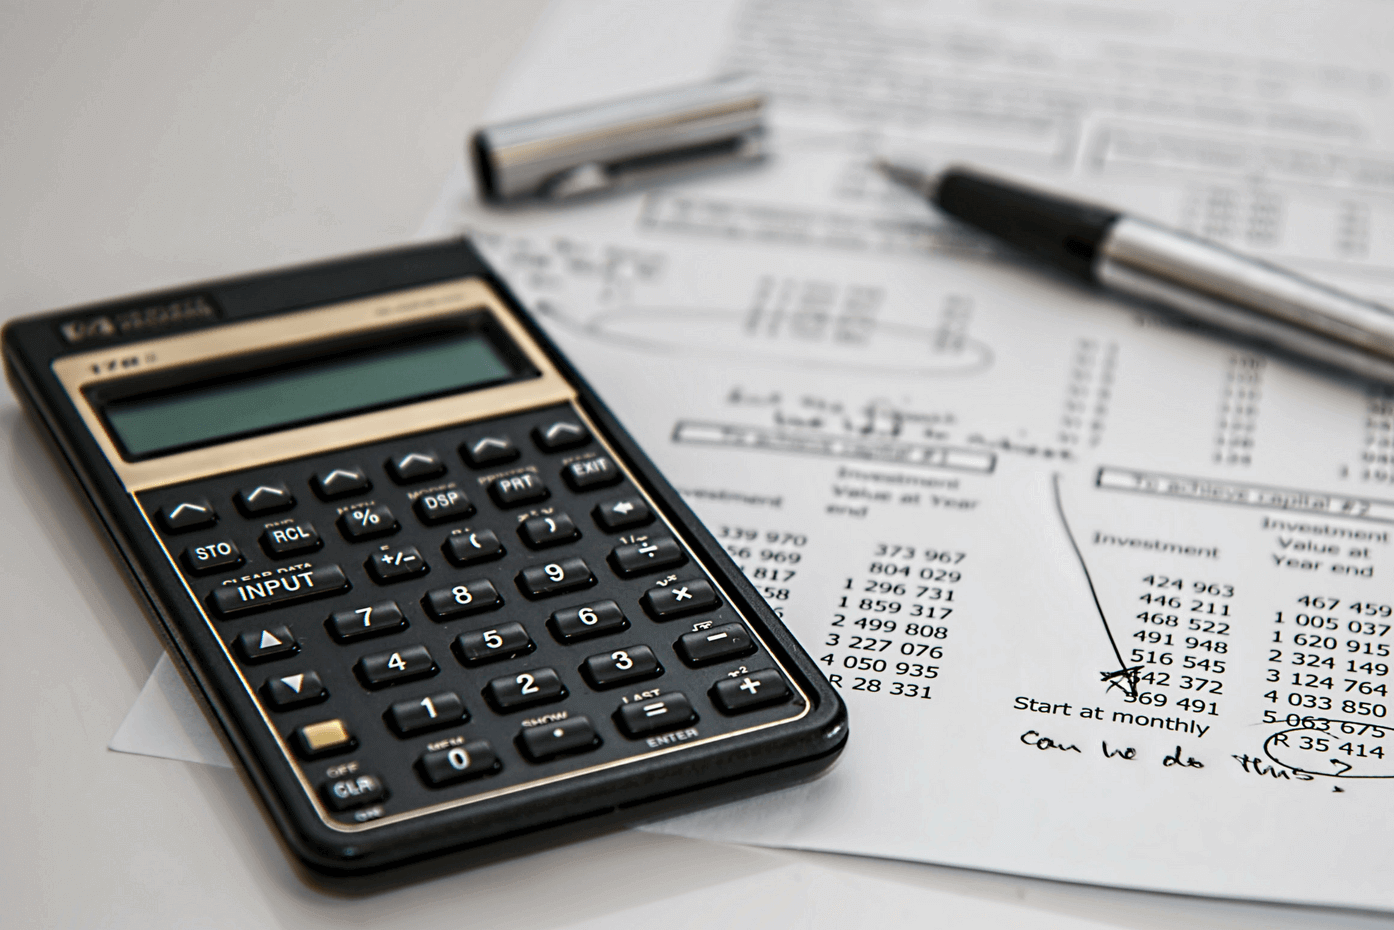 Splitting of Assets - calculating Costs to Expect